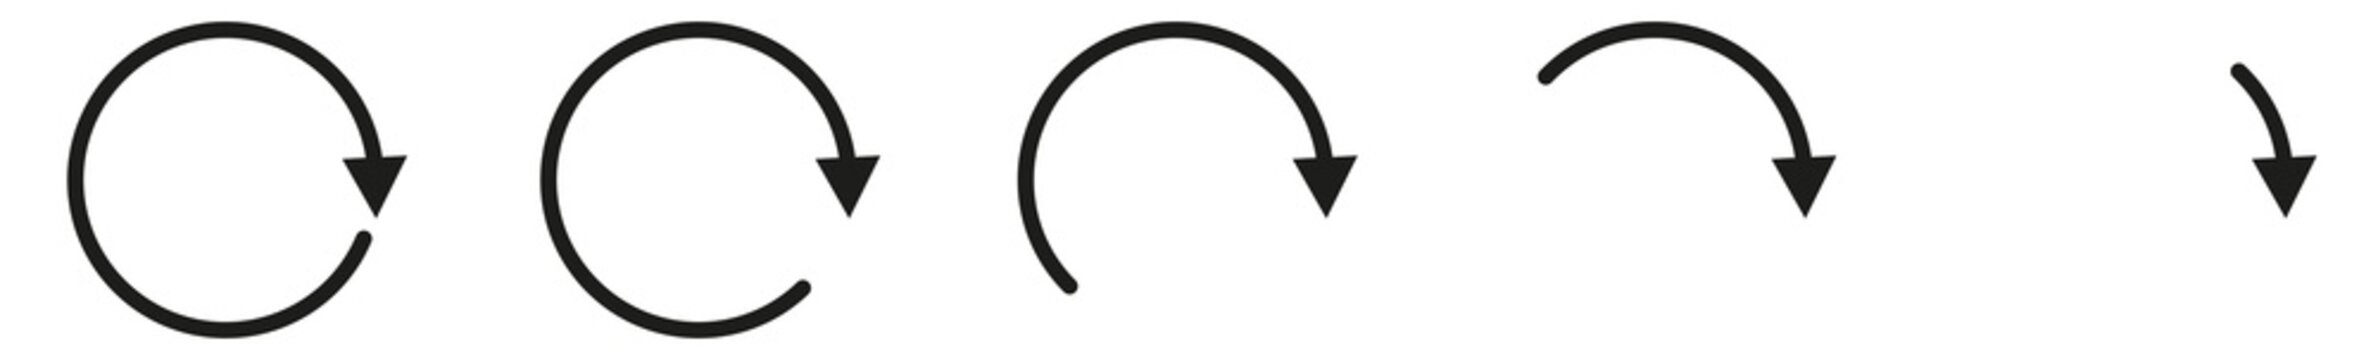 Arrow Icon Black | Circle Arrows | Infographic Illustration | Direction Symbol | Curved Loading Logo | Up Sign | Isolated | Variations